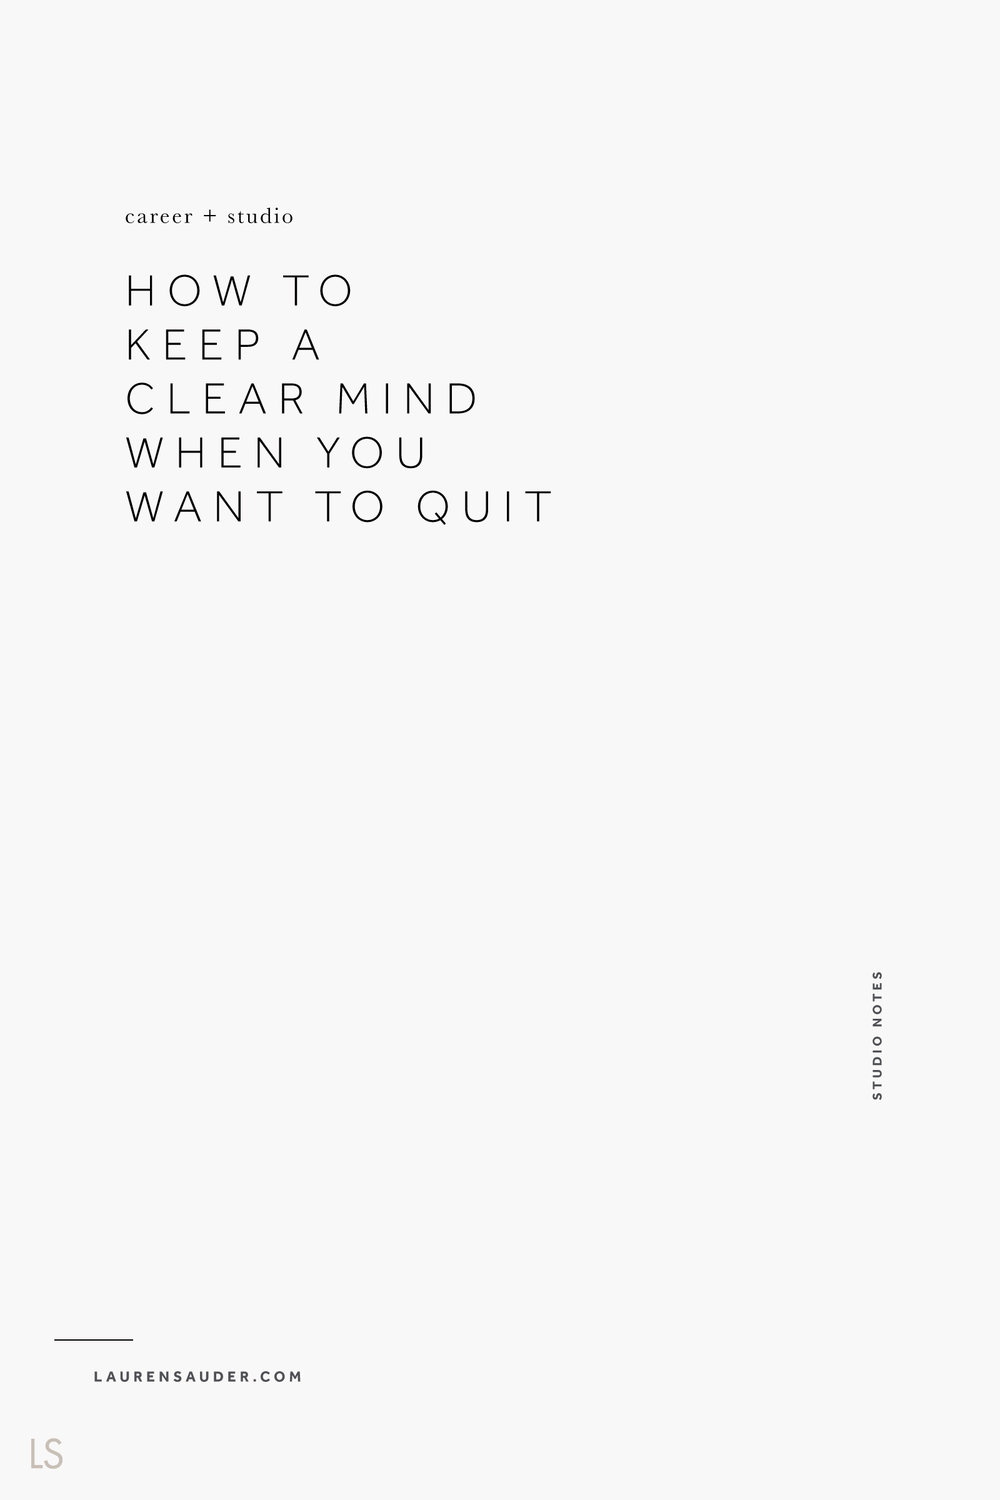 How to Keep a Clear Mind When You Want to Quit - Lauren Sauder #motivation productivity, career, work life, quitting, clear mind, vision board, declutter, workspace, gratitude practice.